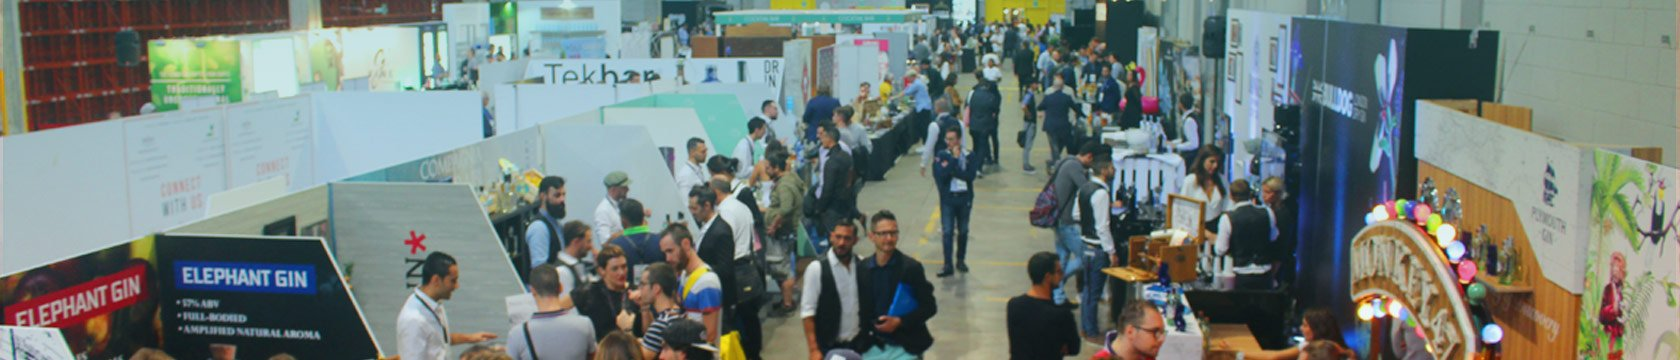 Clappit-Full-Ticketing-Expo-Exhibitor-Fiere-Espositori-Intro-Top-001